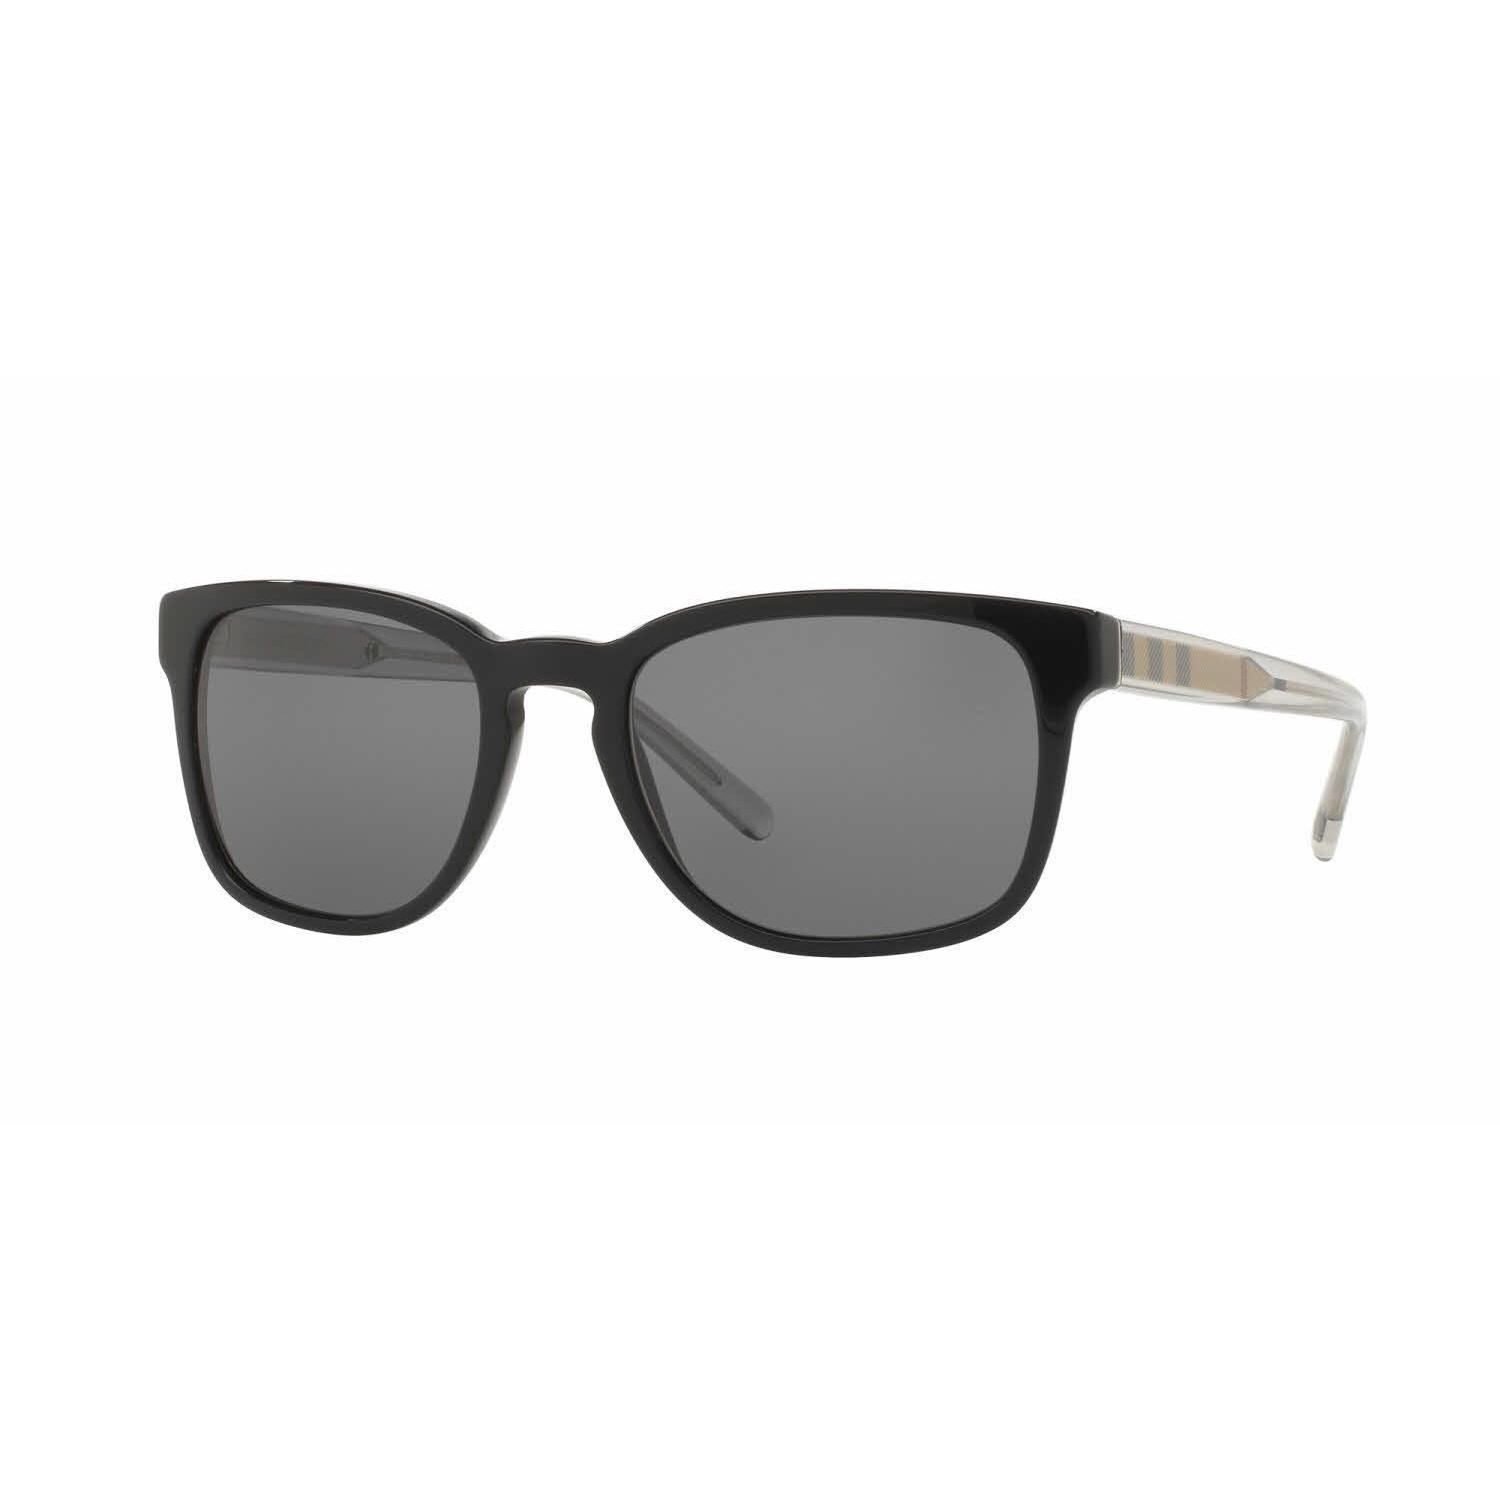 311a22d8a176f Shop Burberry Mens BE4222 300181 Black Plastic Square Sunglasses - Grey -  Free Shipping Today - Overstock.com - 13517186